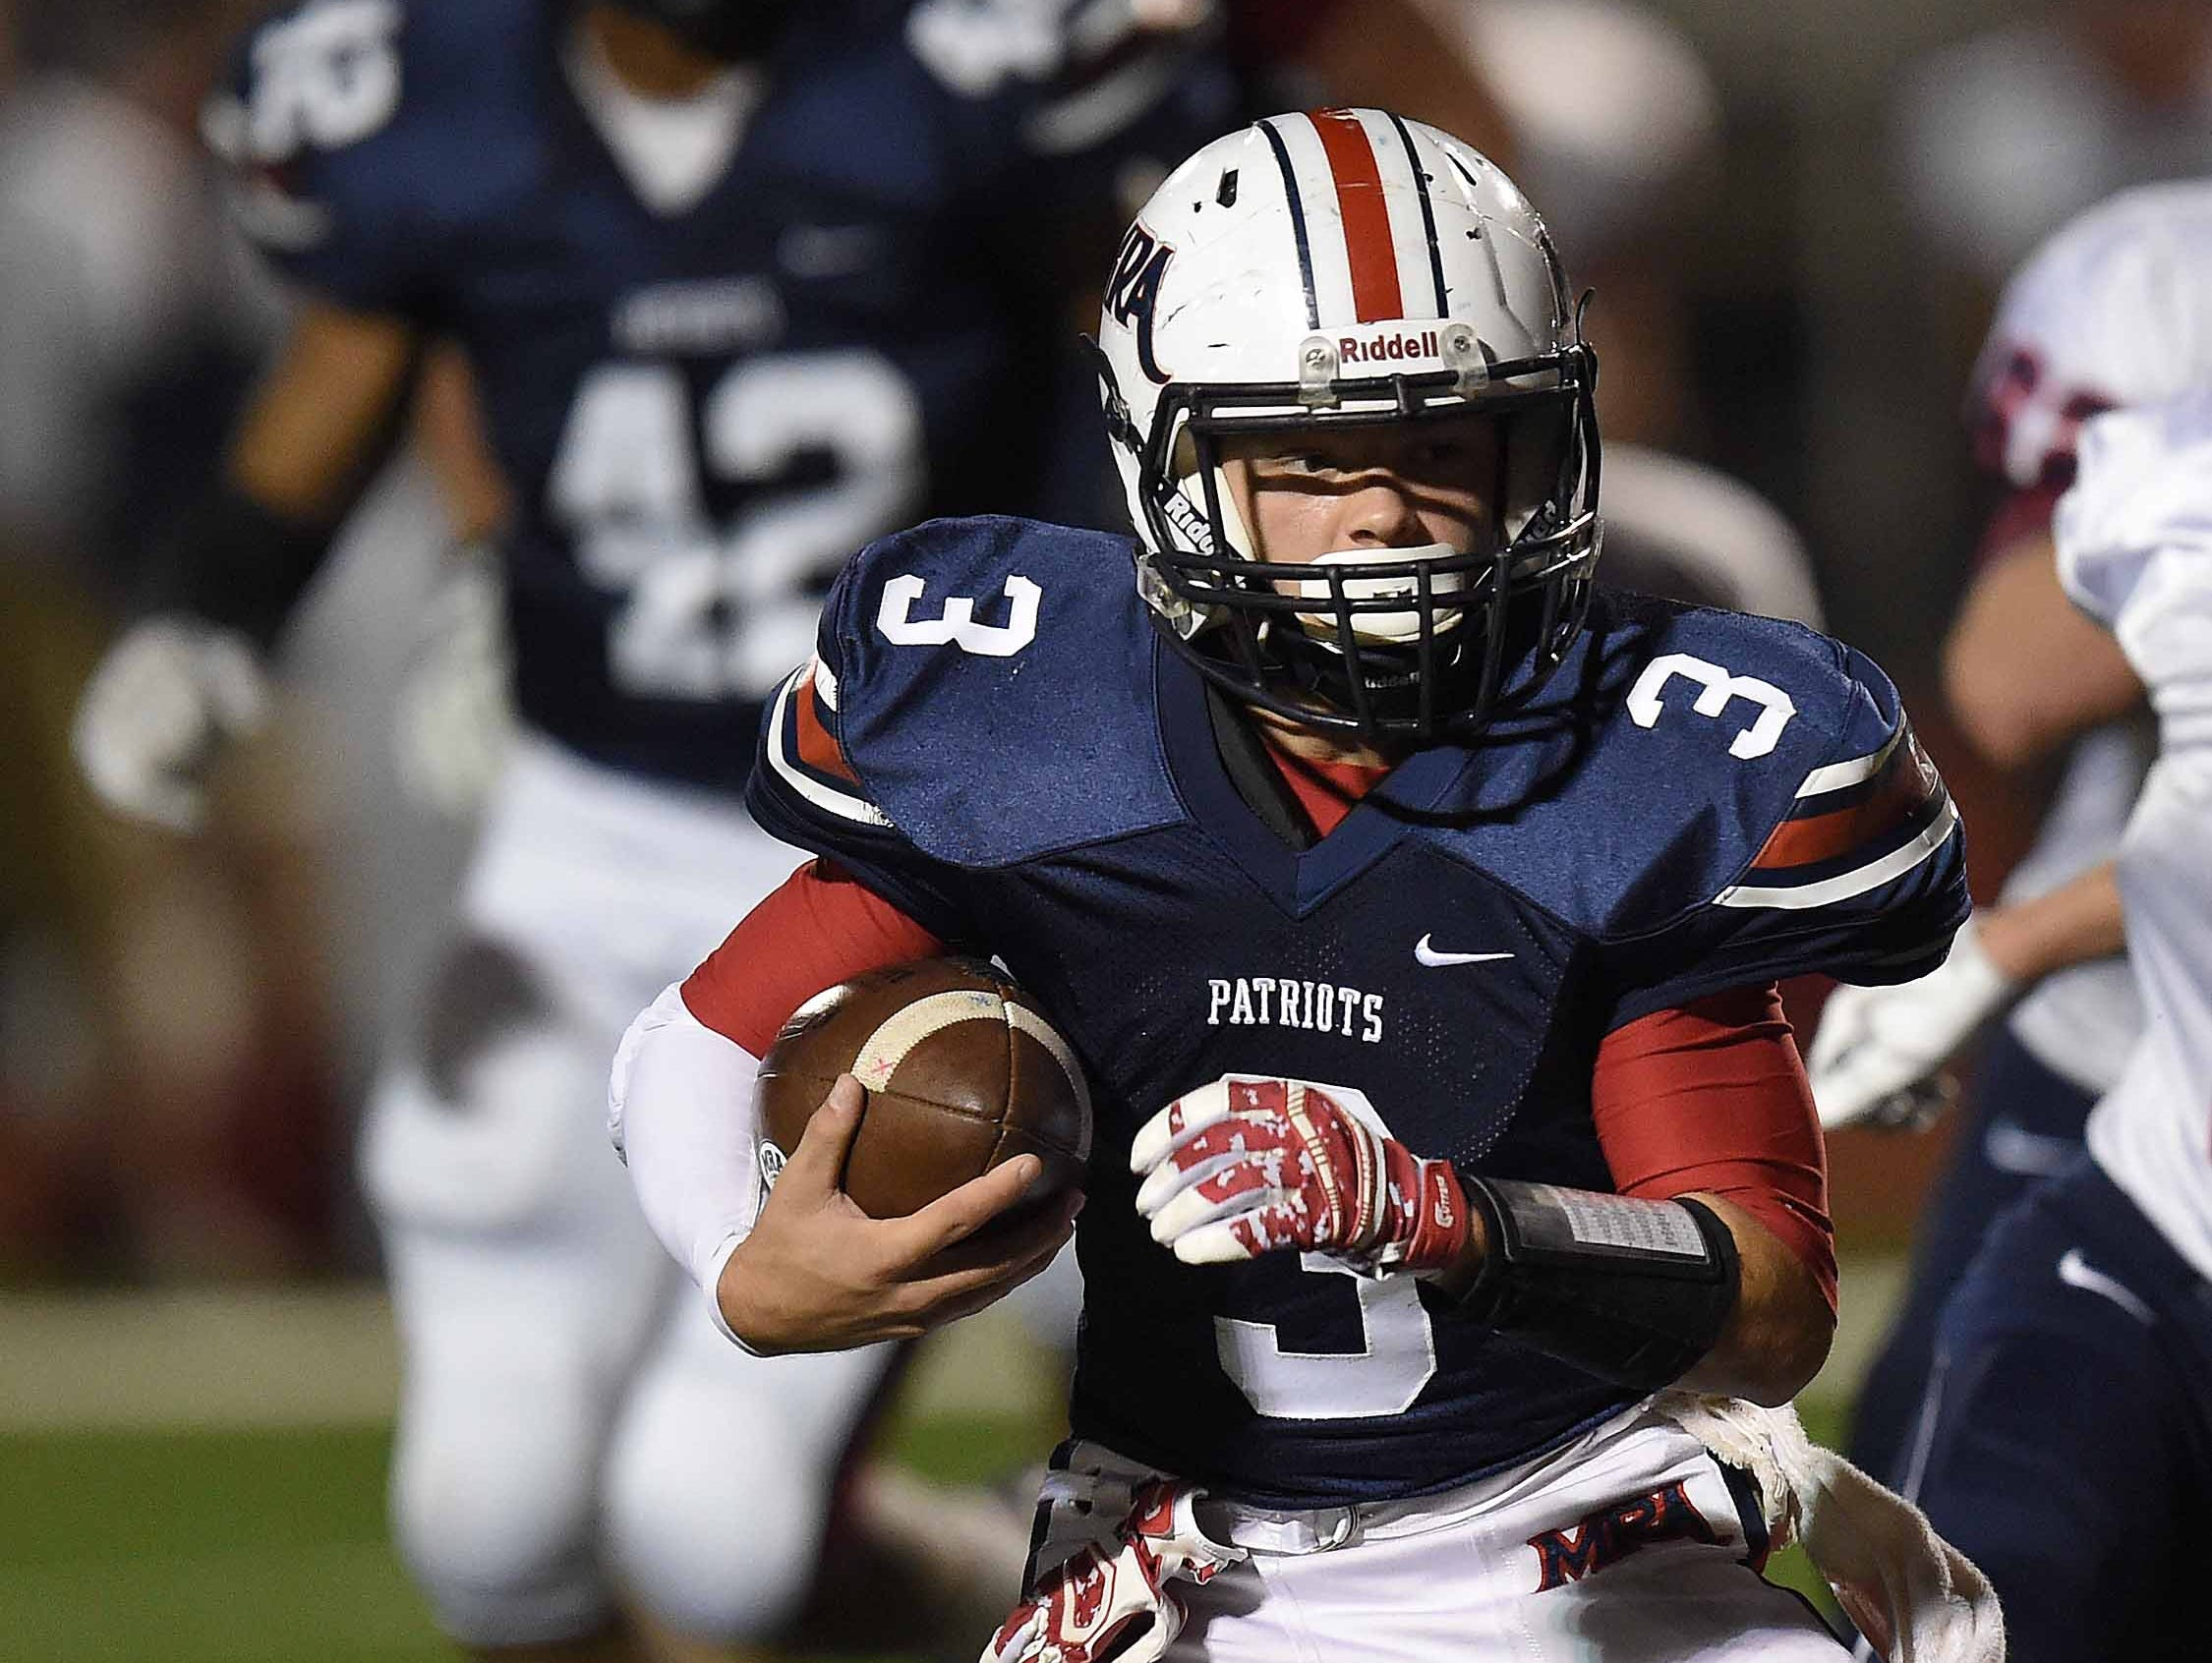 MRA's Karter Bounds (3) runs the ball against Lamar on Friday, October 30, 2015, at Madison-Ridgeland Academy in Madison, Miss.